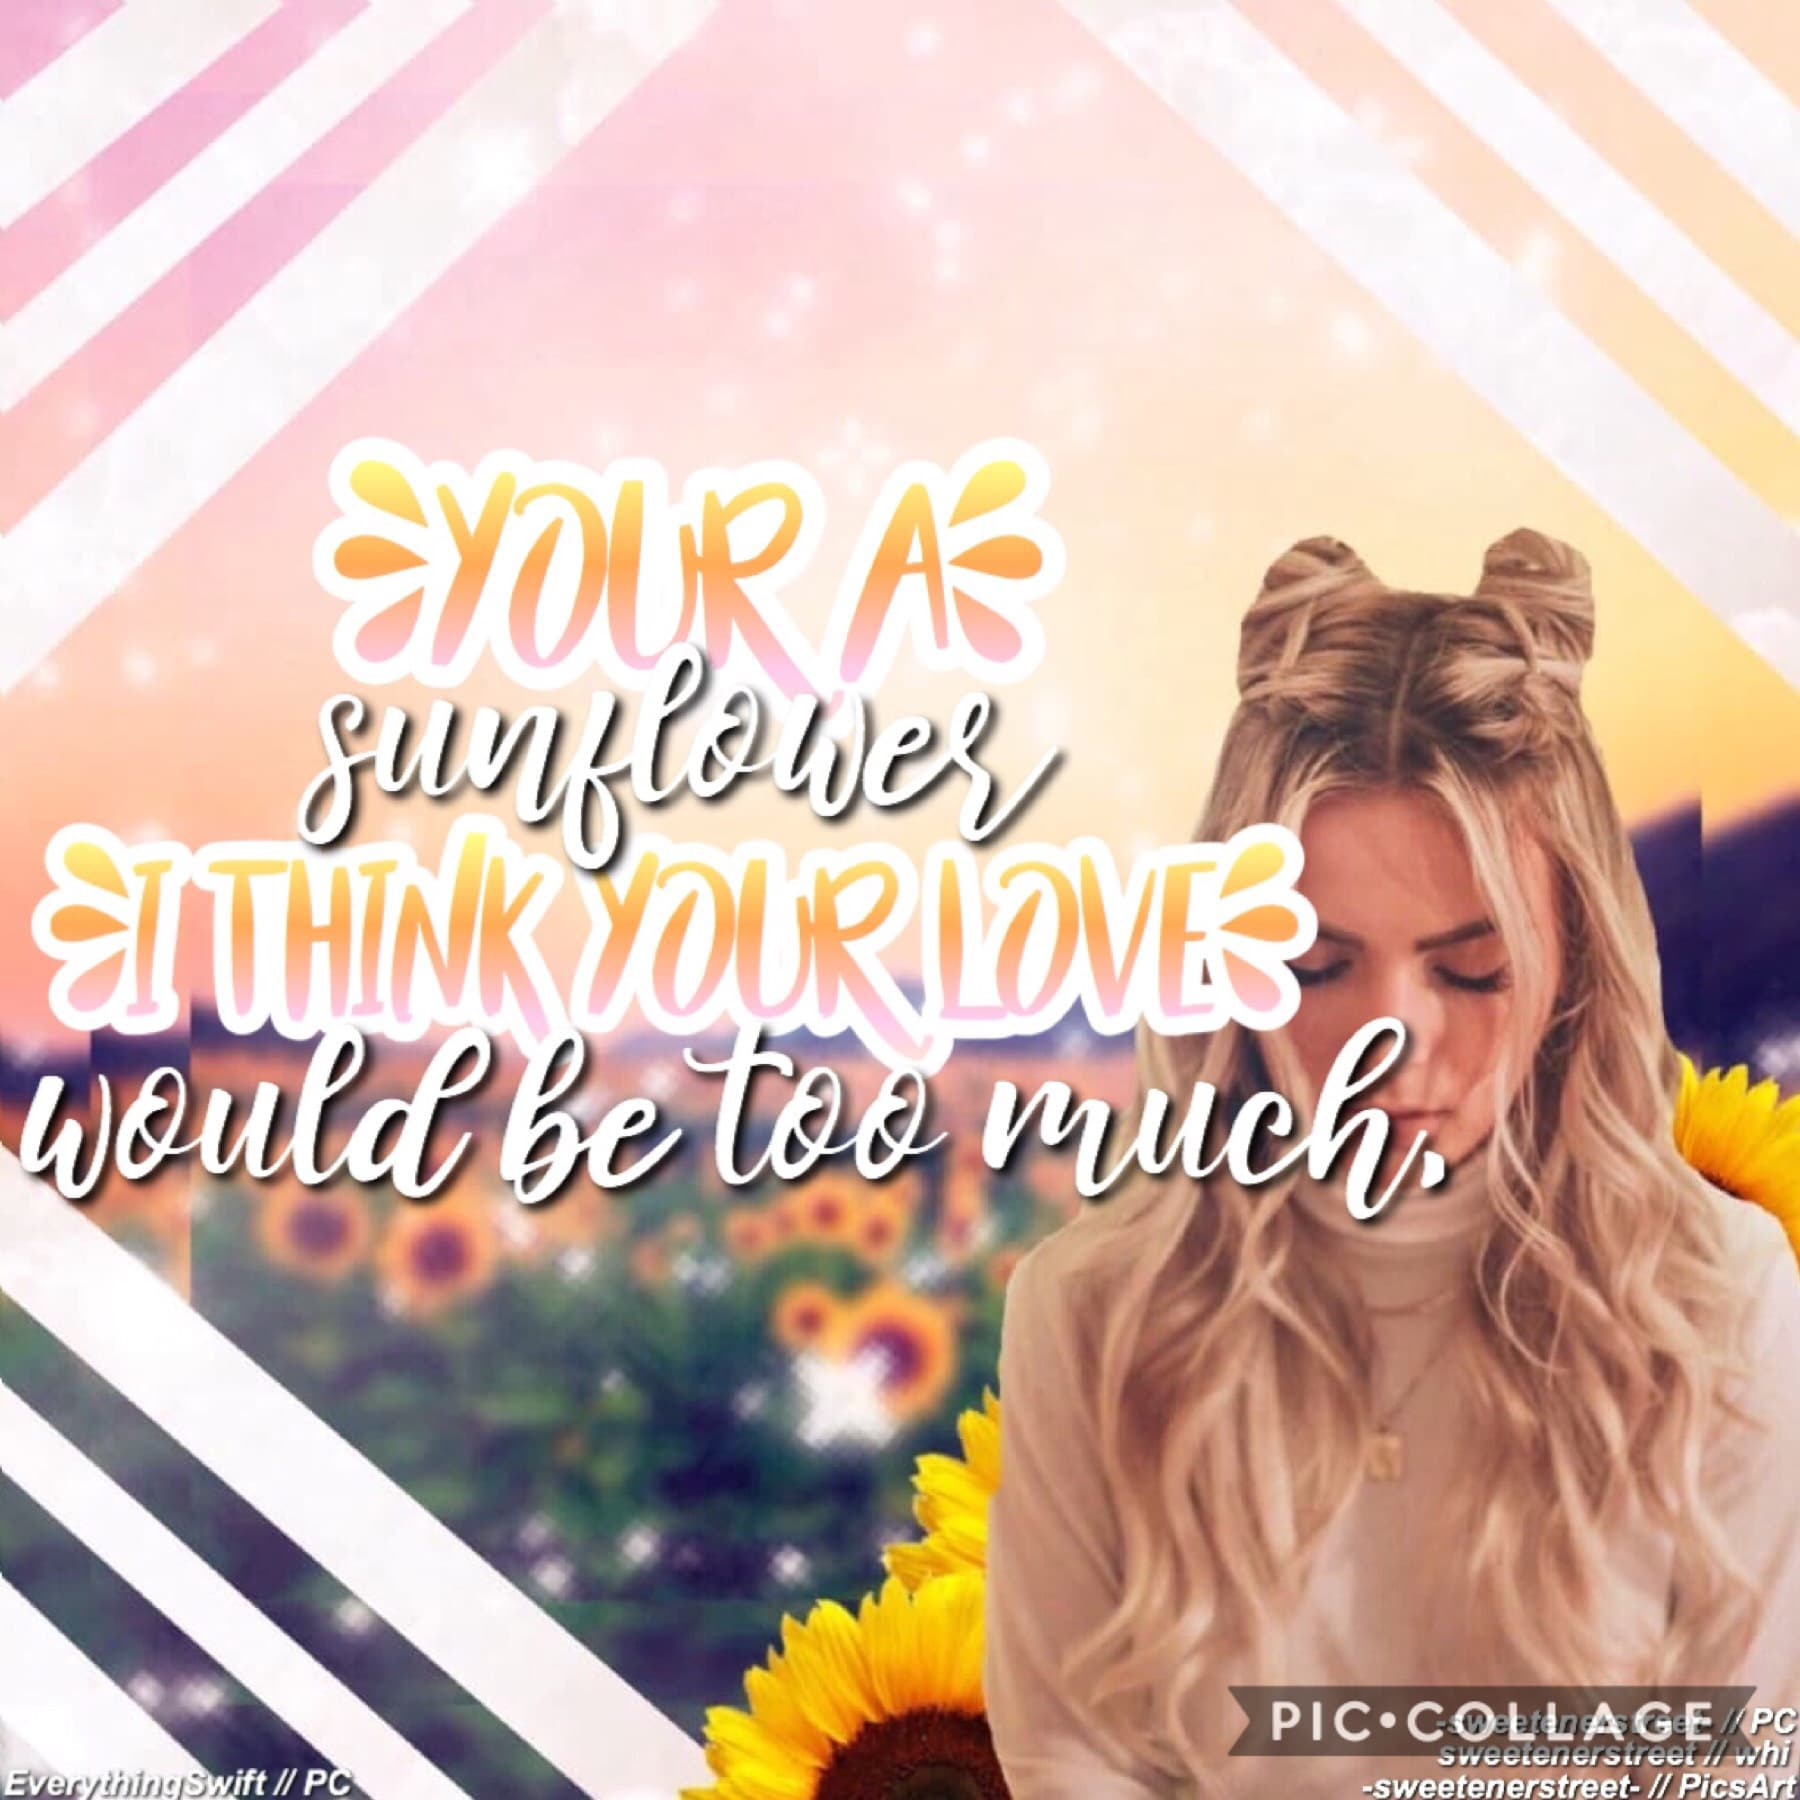 Collab with the awesomely, talented...🥁🥁🥁 EverythingSwift ! 💛💛💛🤩🤩🤩 I absolutely love this song! ☀️☀️🌻🌻